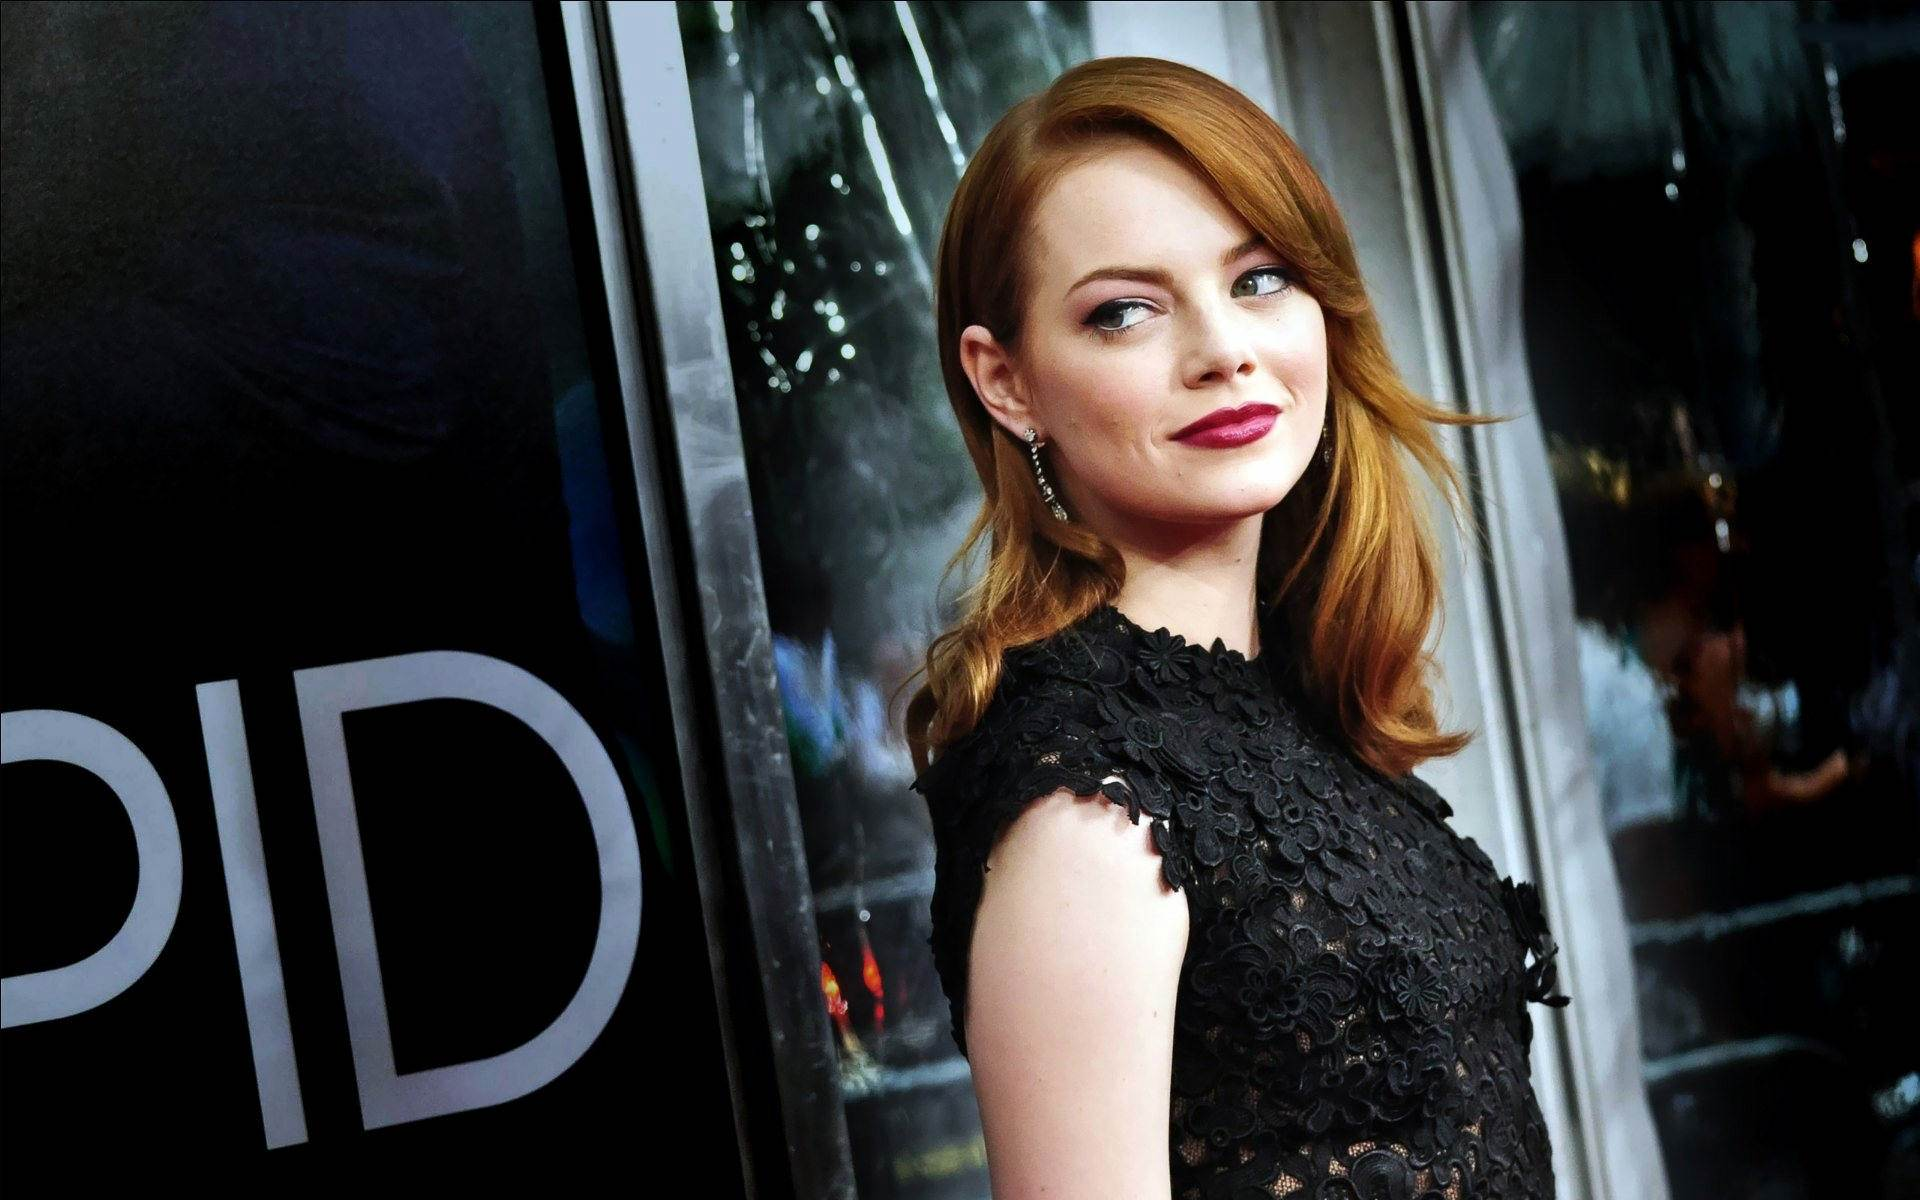 Desktop Emma Stone Beautiful Smiling Look Face Mobile Hd Background Free Wallpaper